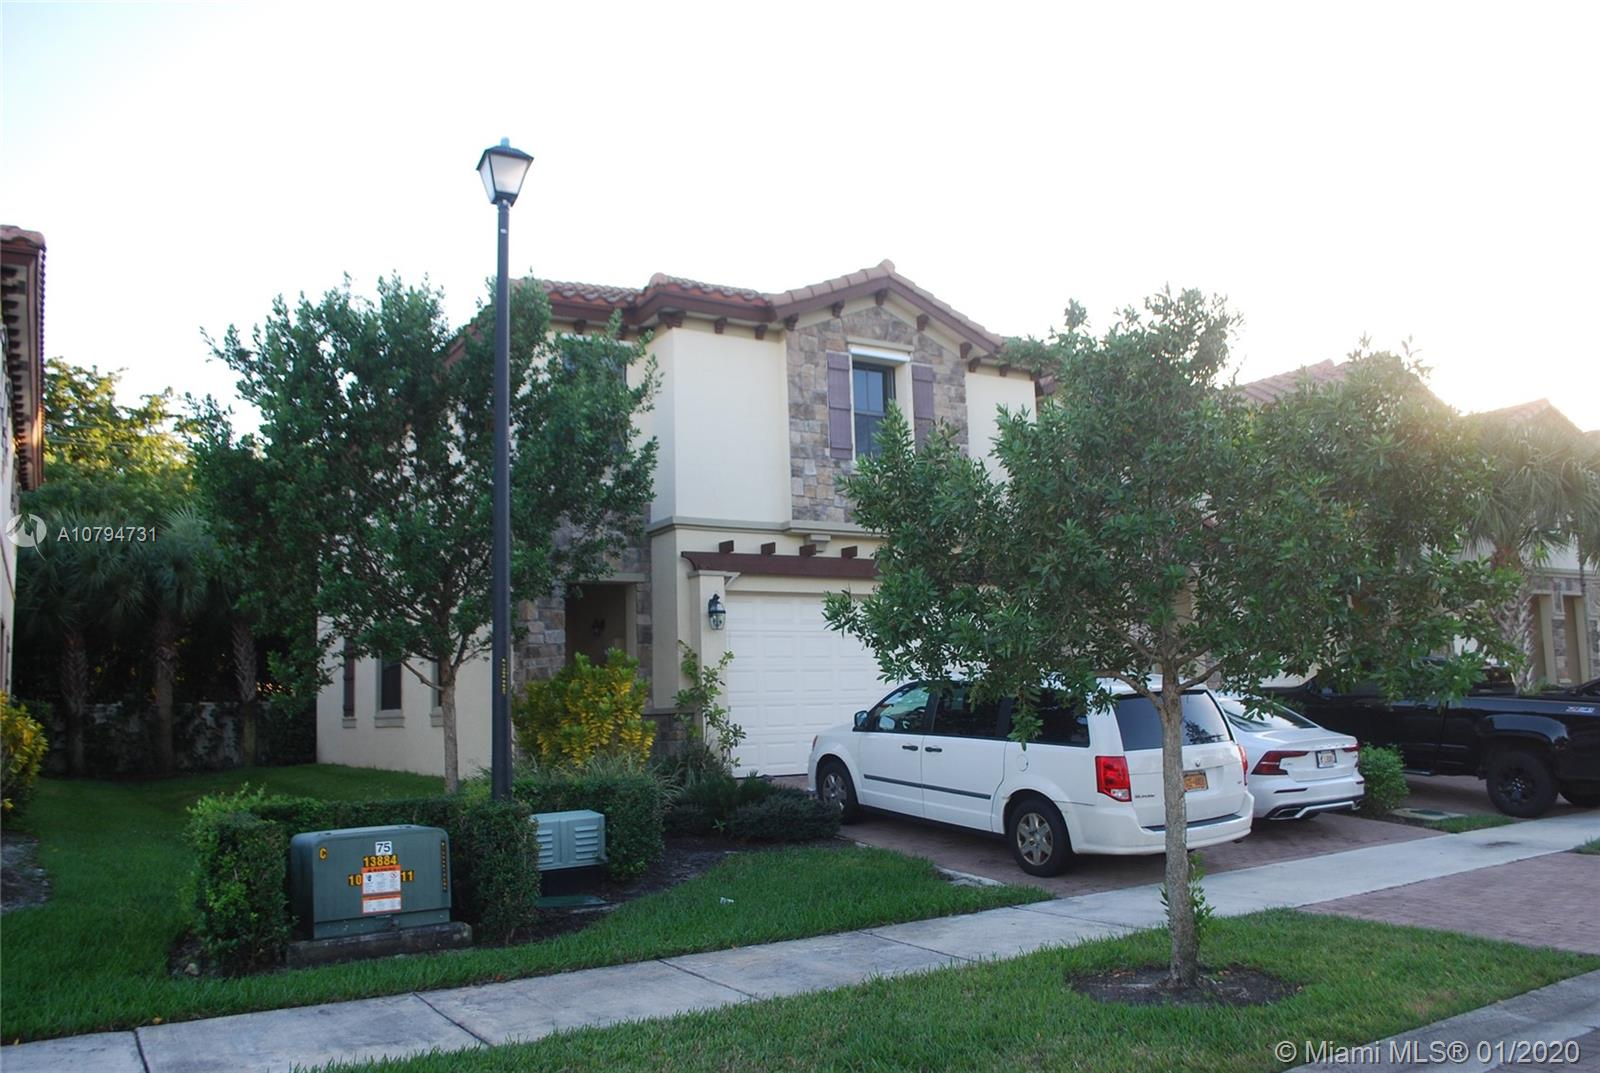 VERY RARE CORNER UNIT 4 BEDROOM $ FOR SALE. NO Neighbors in the back, No Neighbors in the front, No neighbor attached to the right side of the property. A lot of privacy. Two cars garage, feel like living in a single family home. The HOA covers pool and landscape. VERY LOW HOA